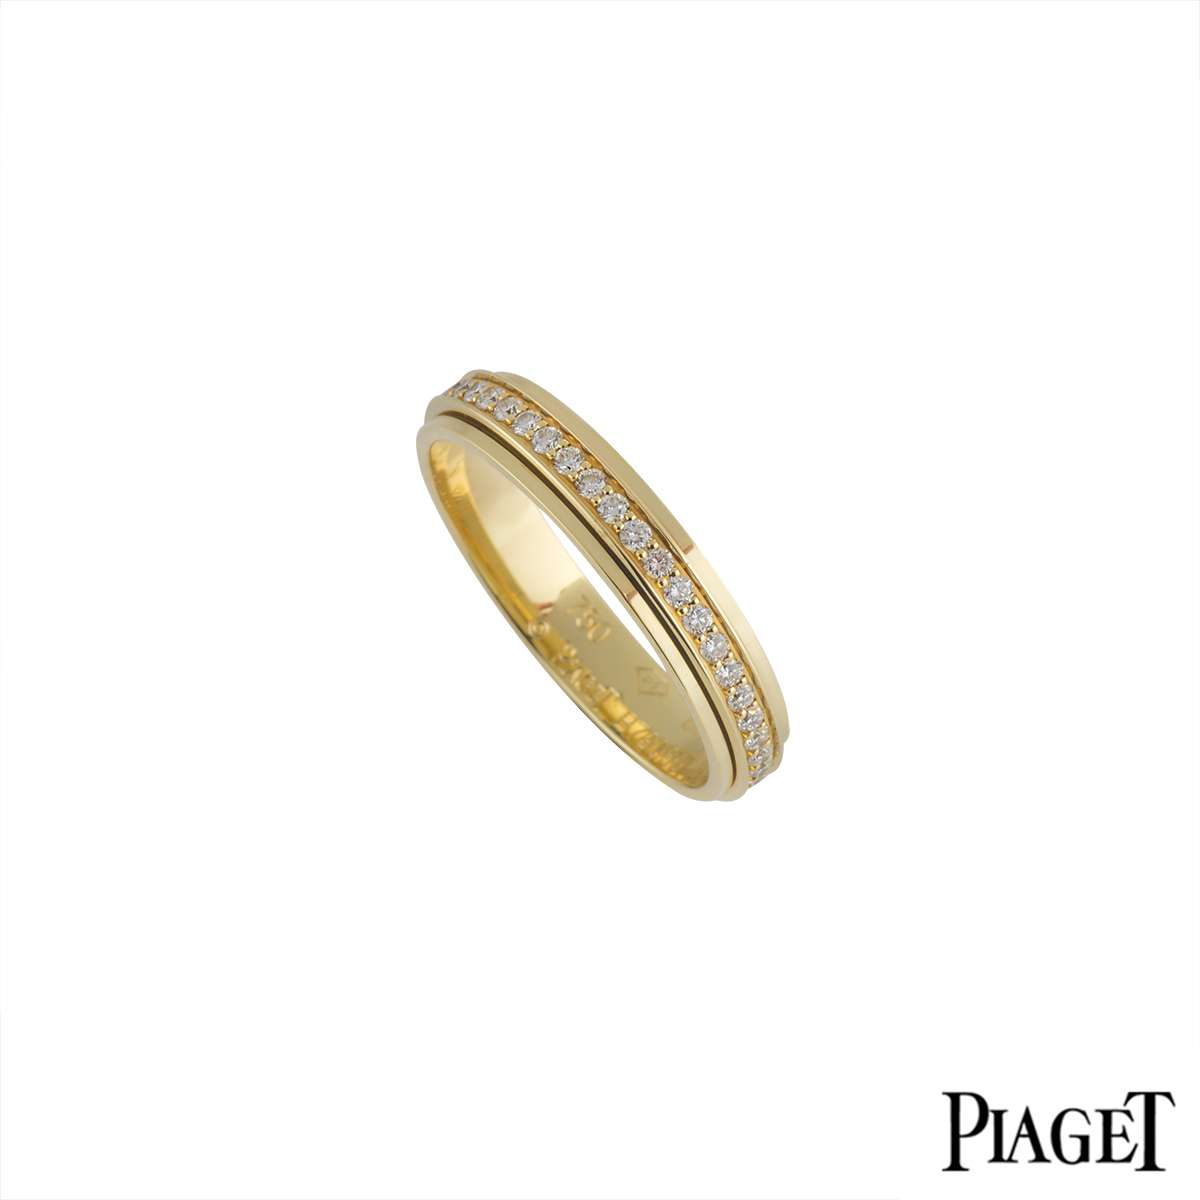 Piaget 18k Yellow Gold Diamond Set Possession Ring Size 68